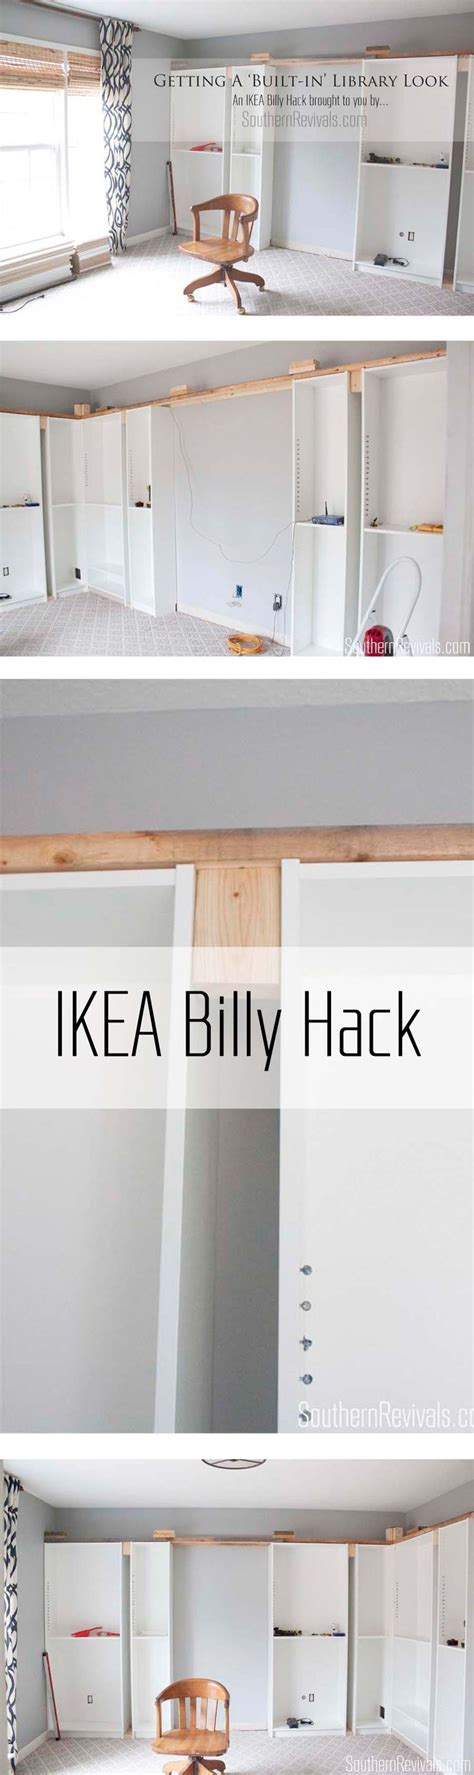 office makeover part 1 building in billy ikea hack 596 best images about diy furniture on pinterest